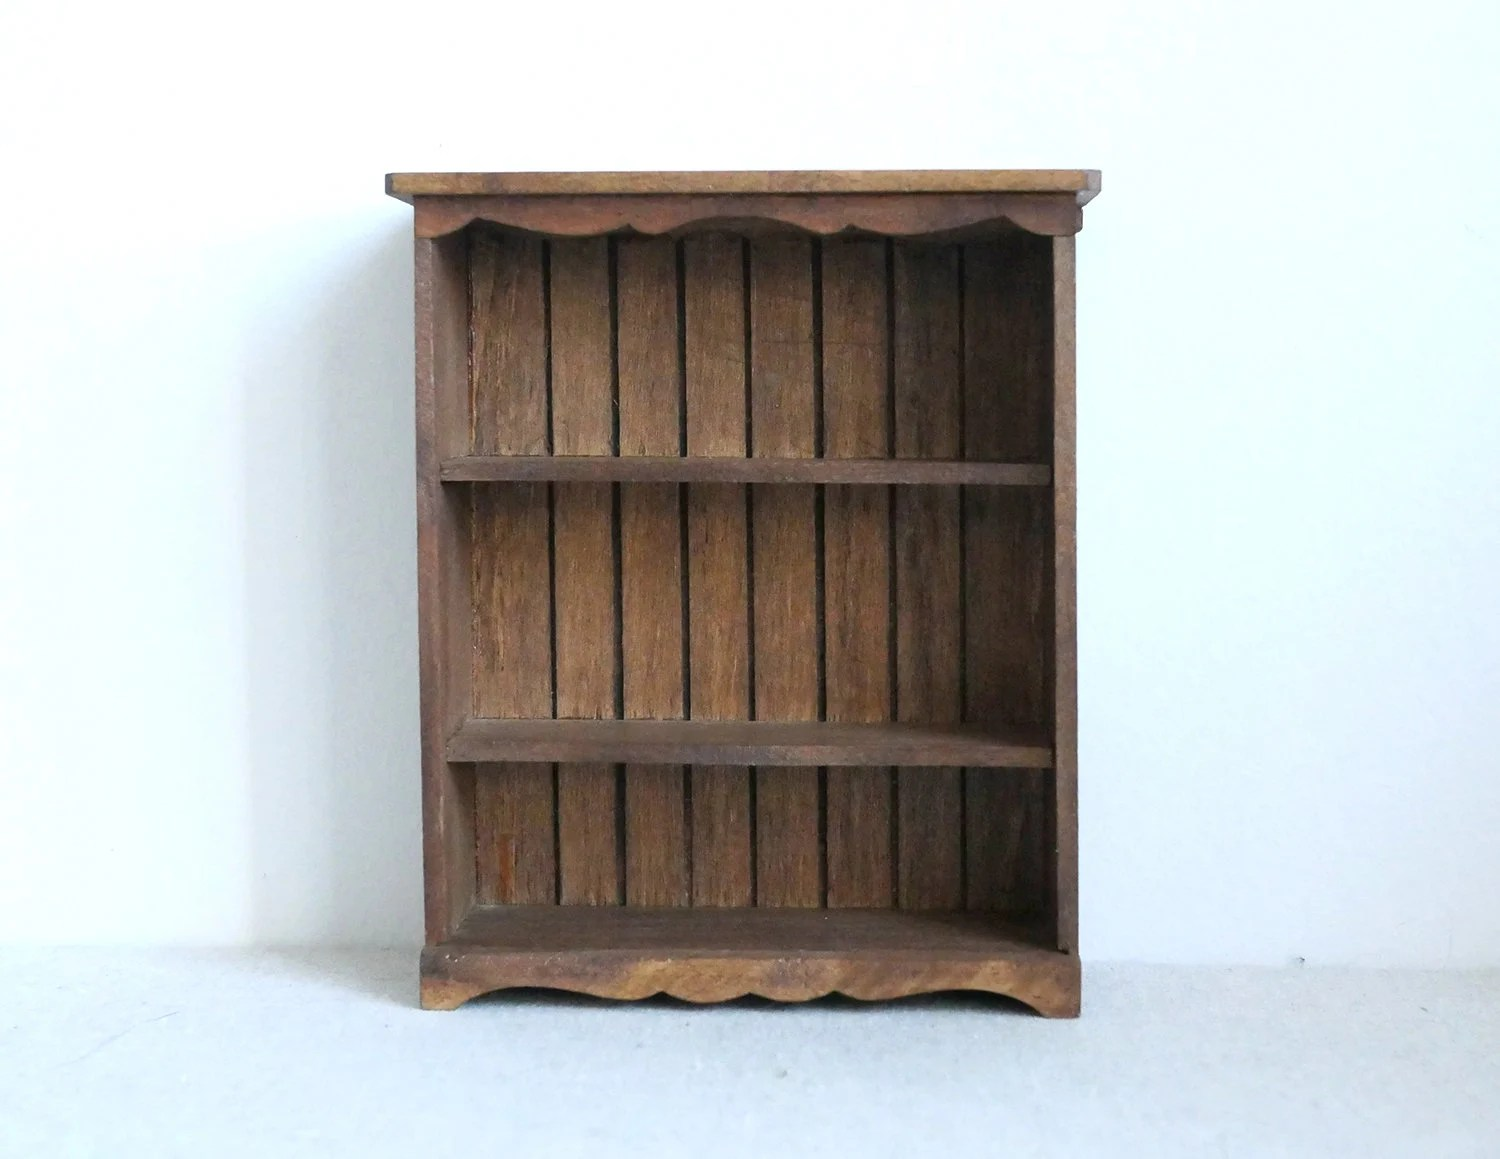 1 12th Scale Dollhouse Miniatures Handmade Shelf Miniature Multipurpose Storage 1 12th Scale Wooden Shelf Thanksgiving Gift